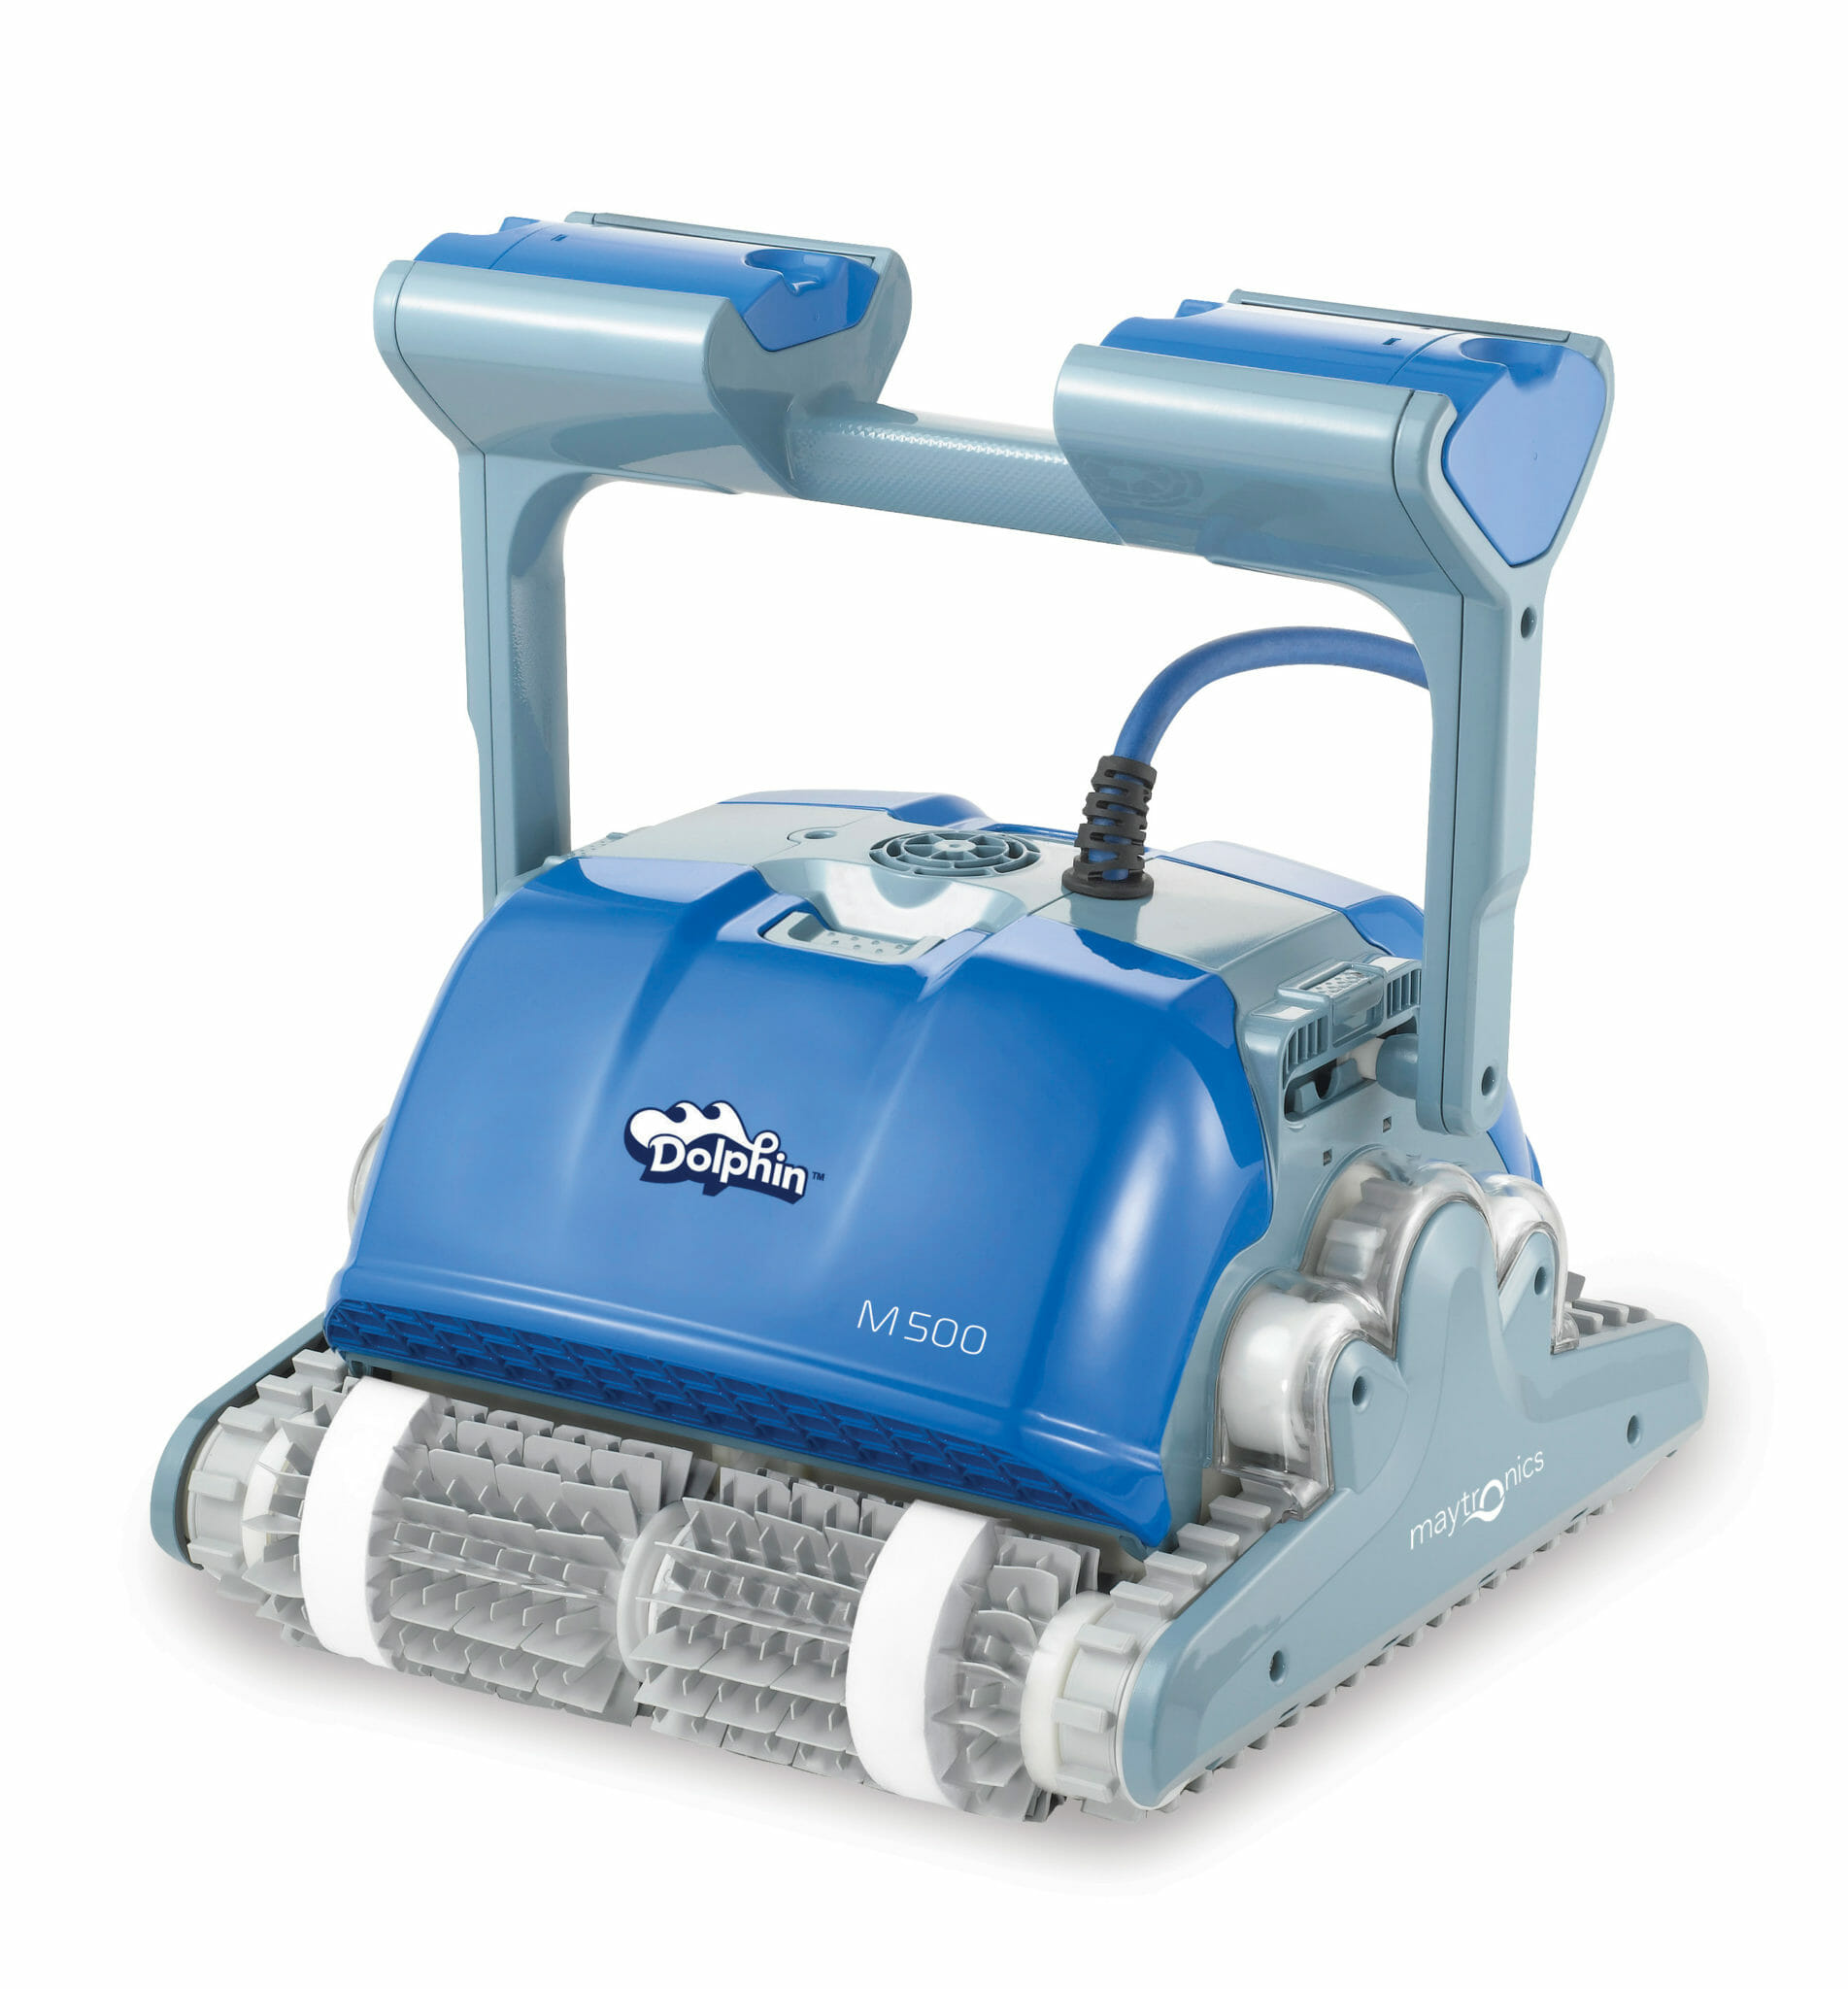 Dolphin s-series s50 robotic pool cleaner | mydolphin. Co. Nz.